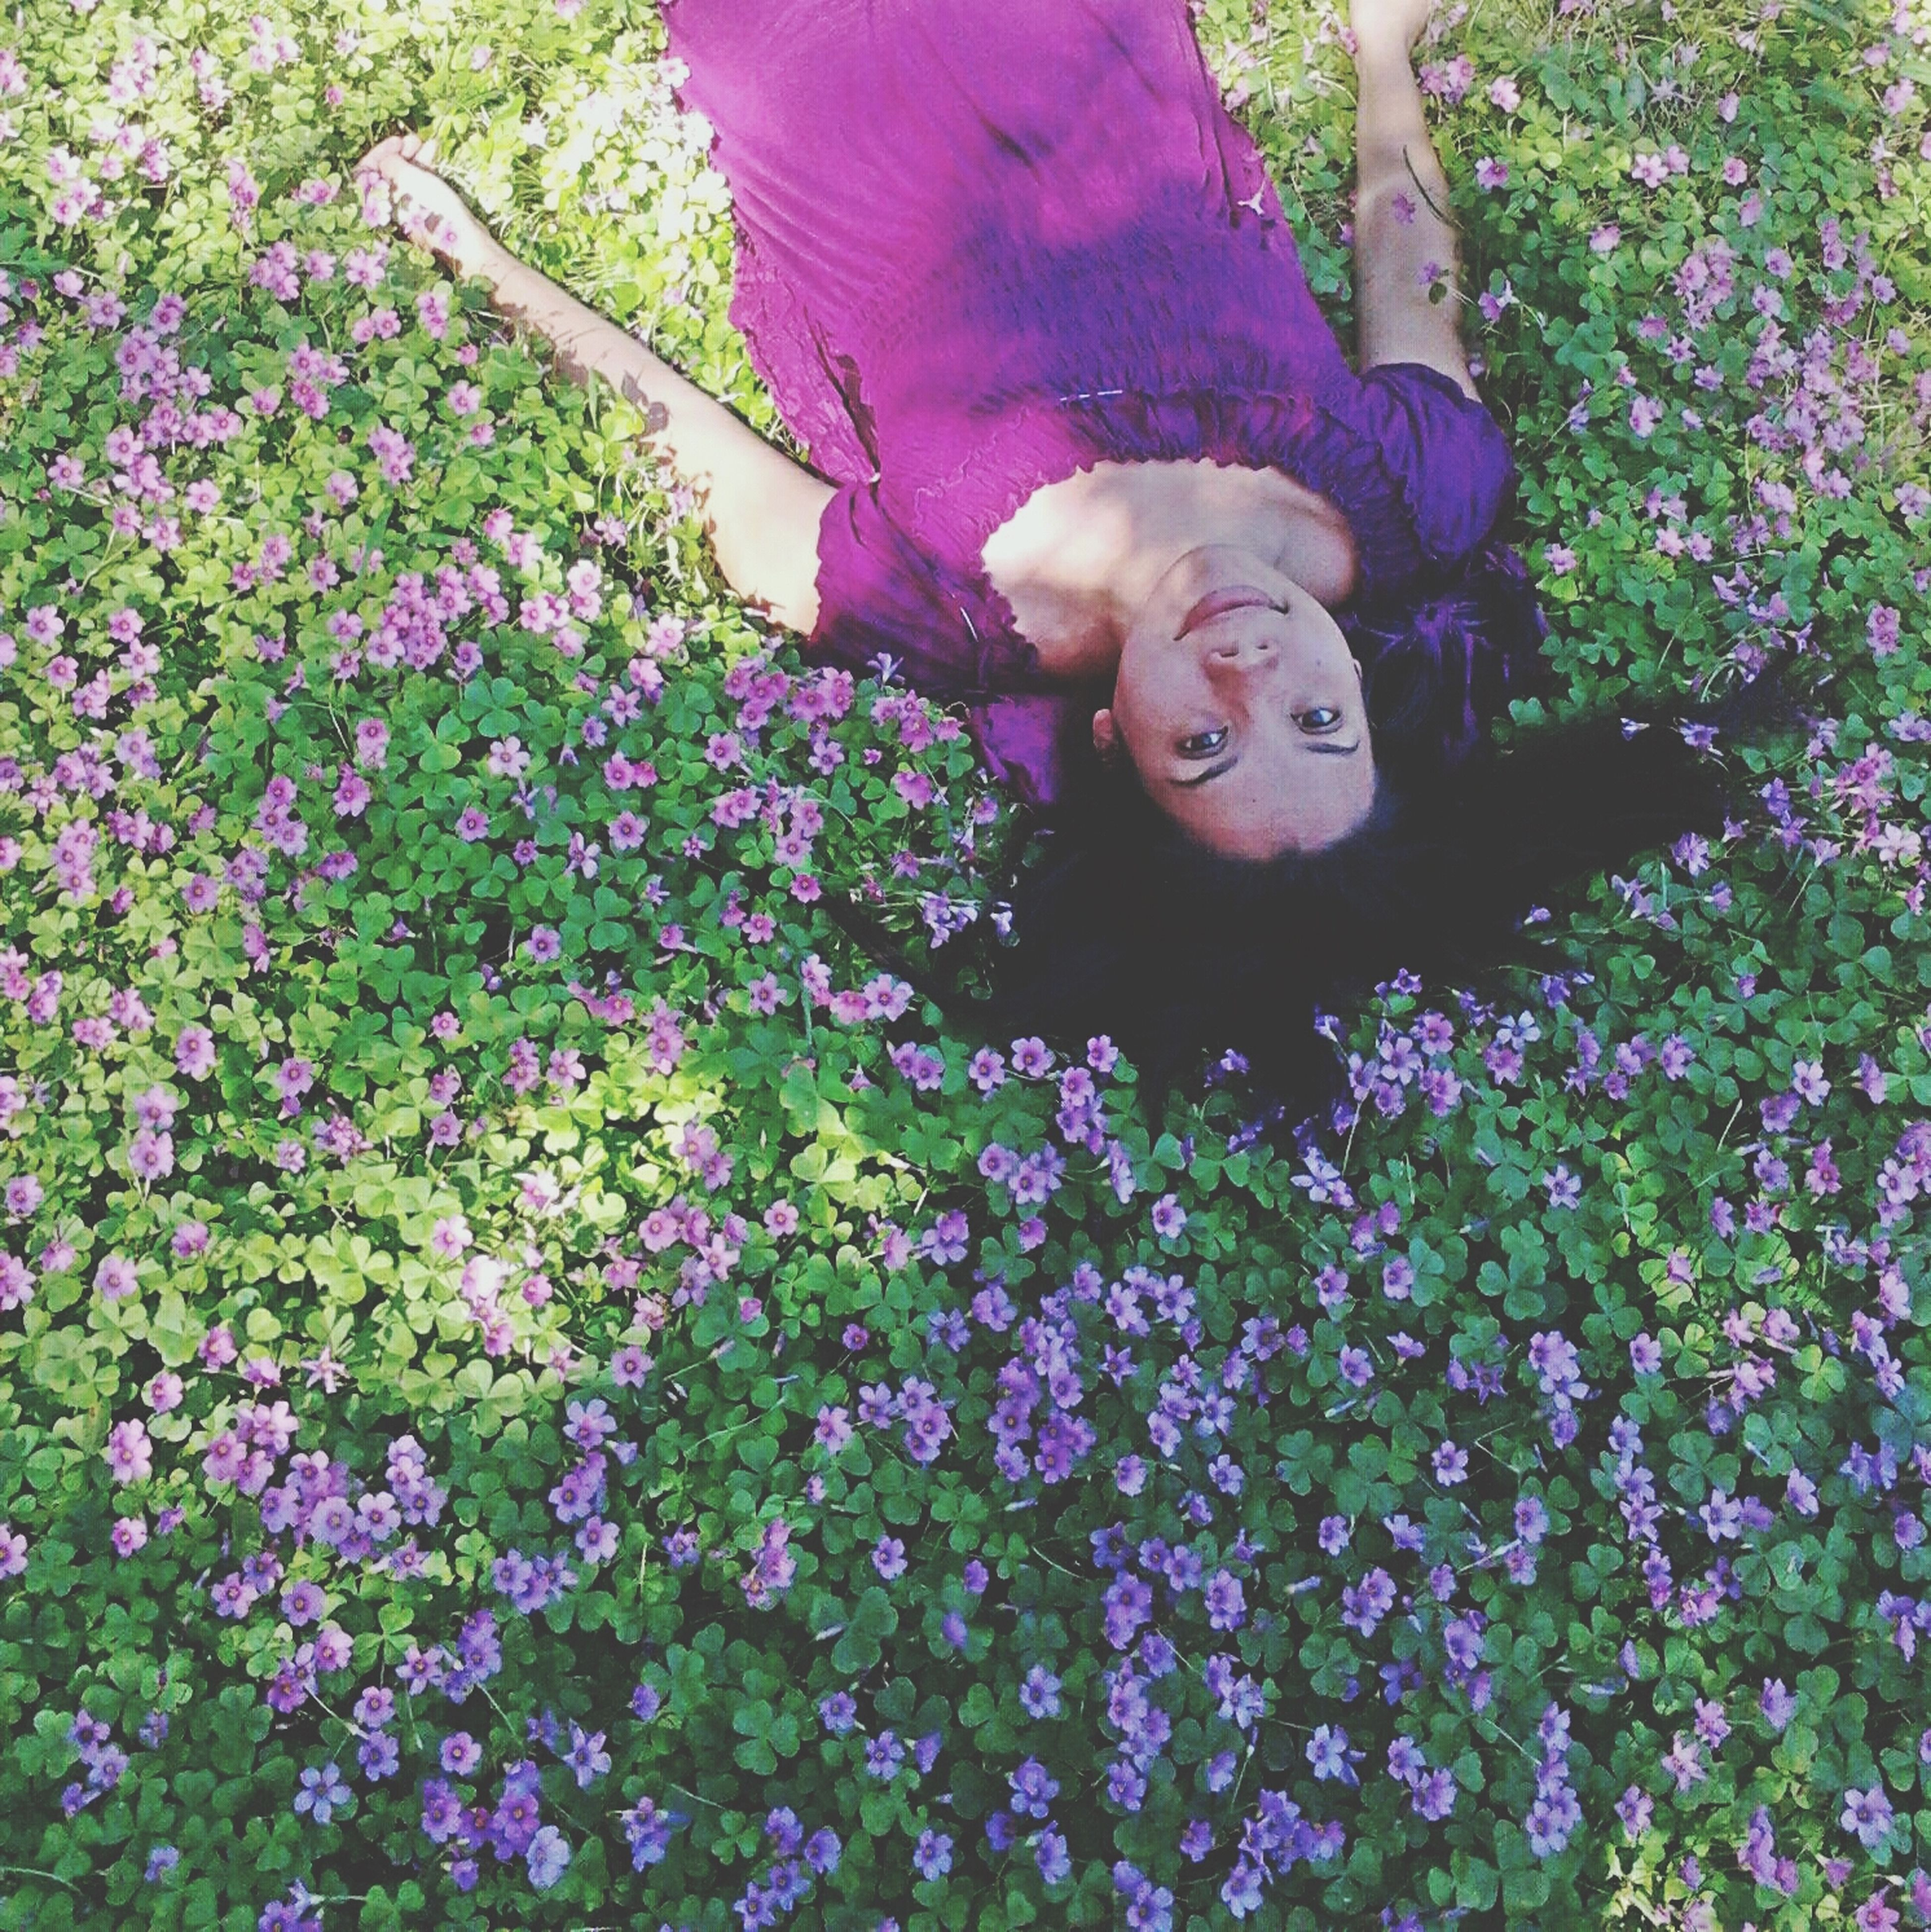 flower, growth, plant, looking at camera, portrait, park - man made space, childhood, nature, pink color, person, day, beauty in nature, tree, freshness, outdoors, front view, field, toy, sitting, fragility